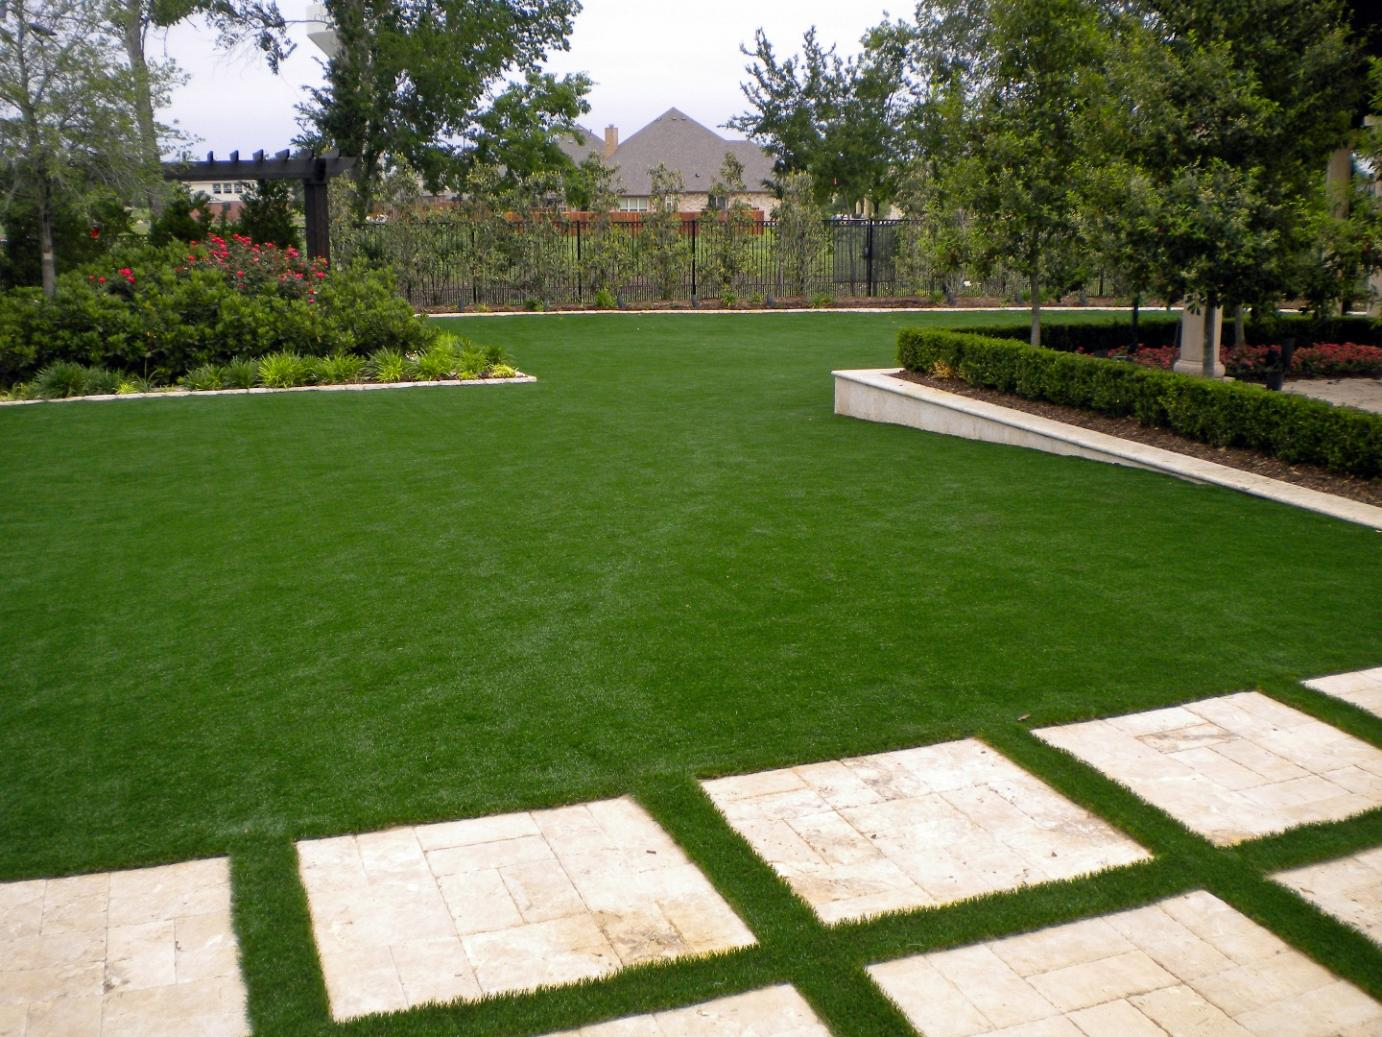 Artificial Turf Cost Sycamore Georgia Landscape Photos Beautiful with 13 Genius Ideas How to Make Cost To Landscape Backyard